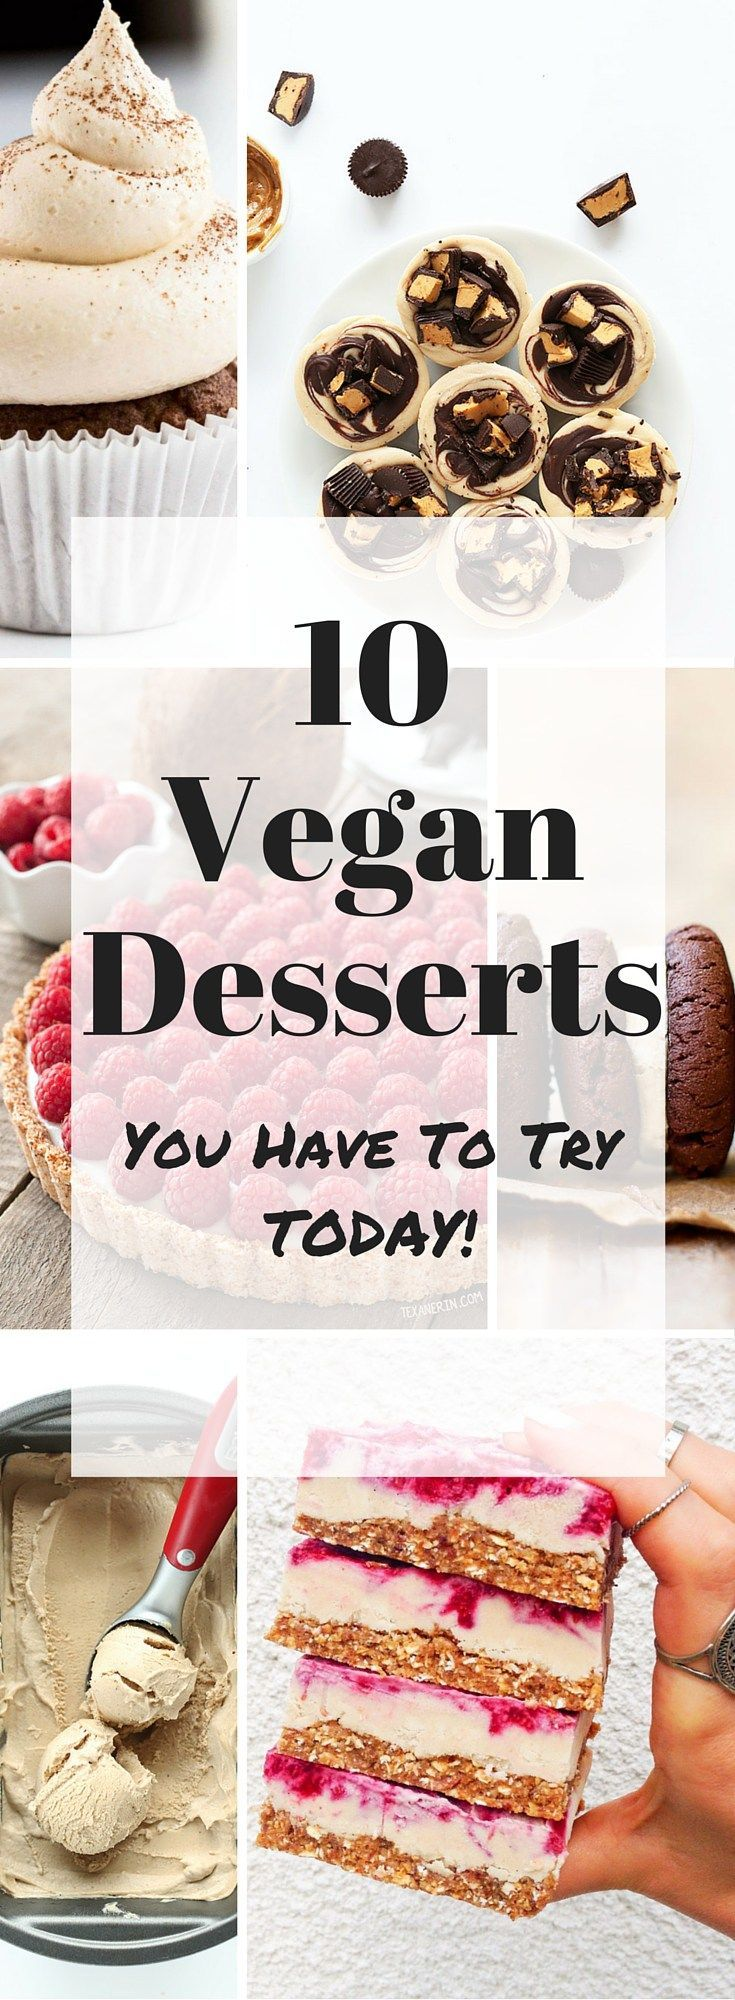 10 Vegan Dessert Recipes {You Must Try Today}